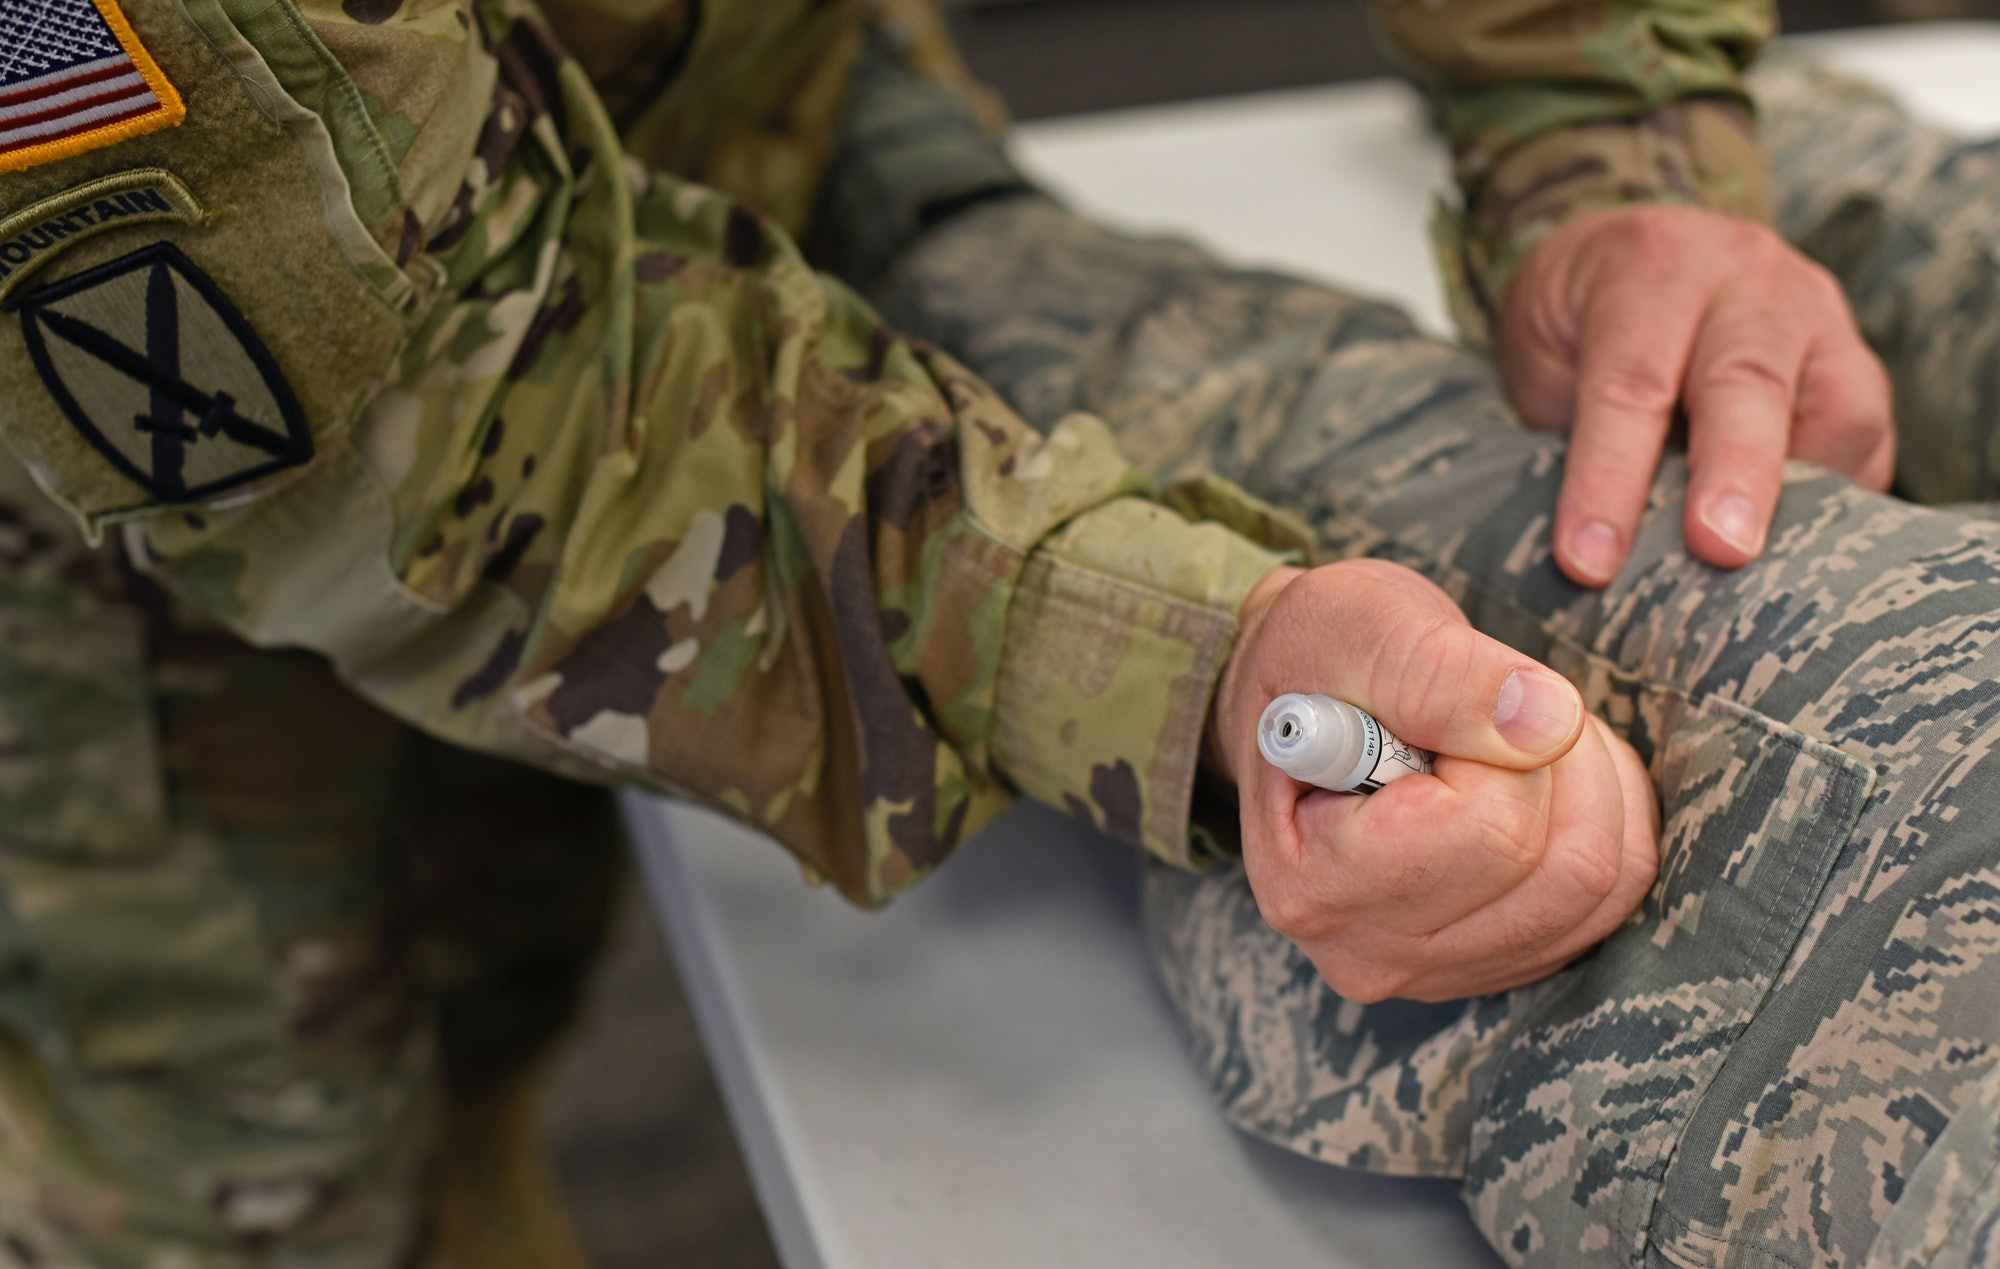 US army chief demonstrates how to use nerve agent antidote kit.